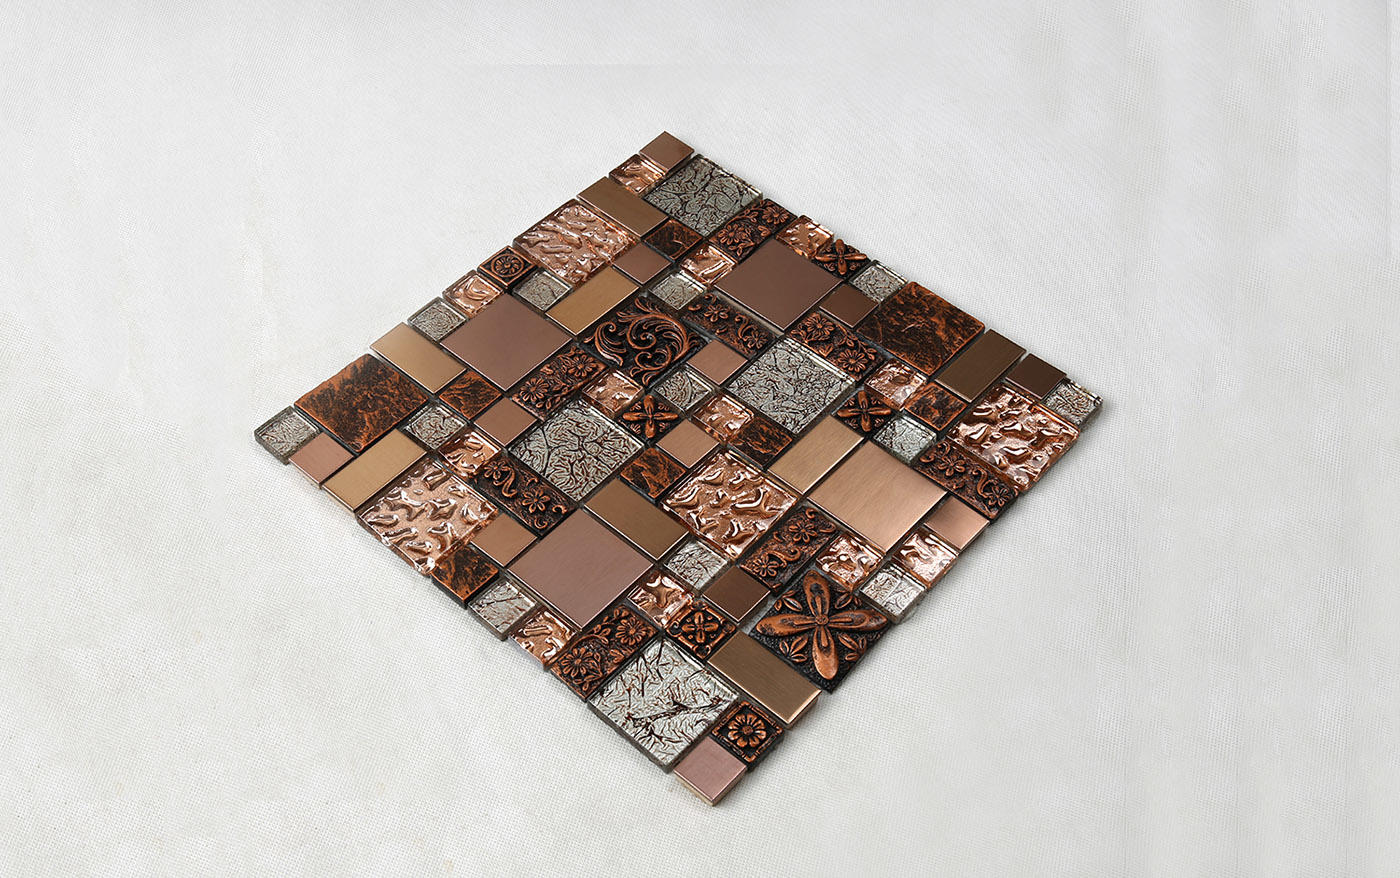 Heng Xing-Rose Gold Resin Metallic Glass Mosaic Tile Hxl09 | Red Glass Tile Factory